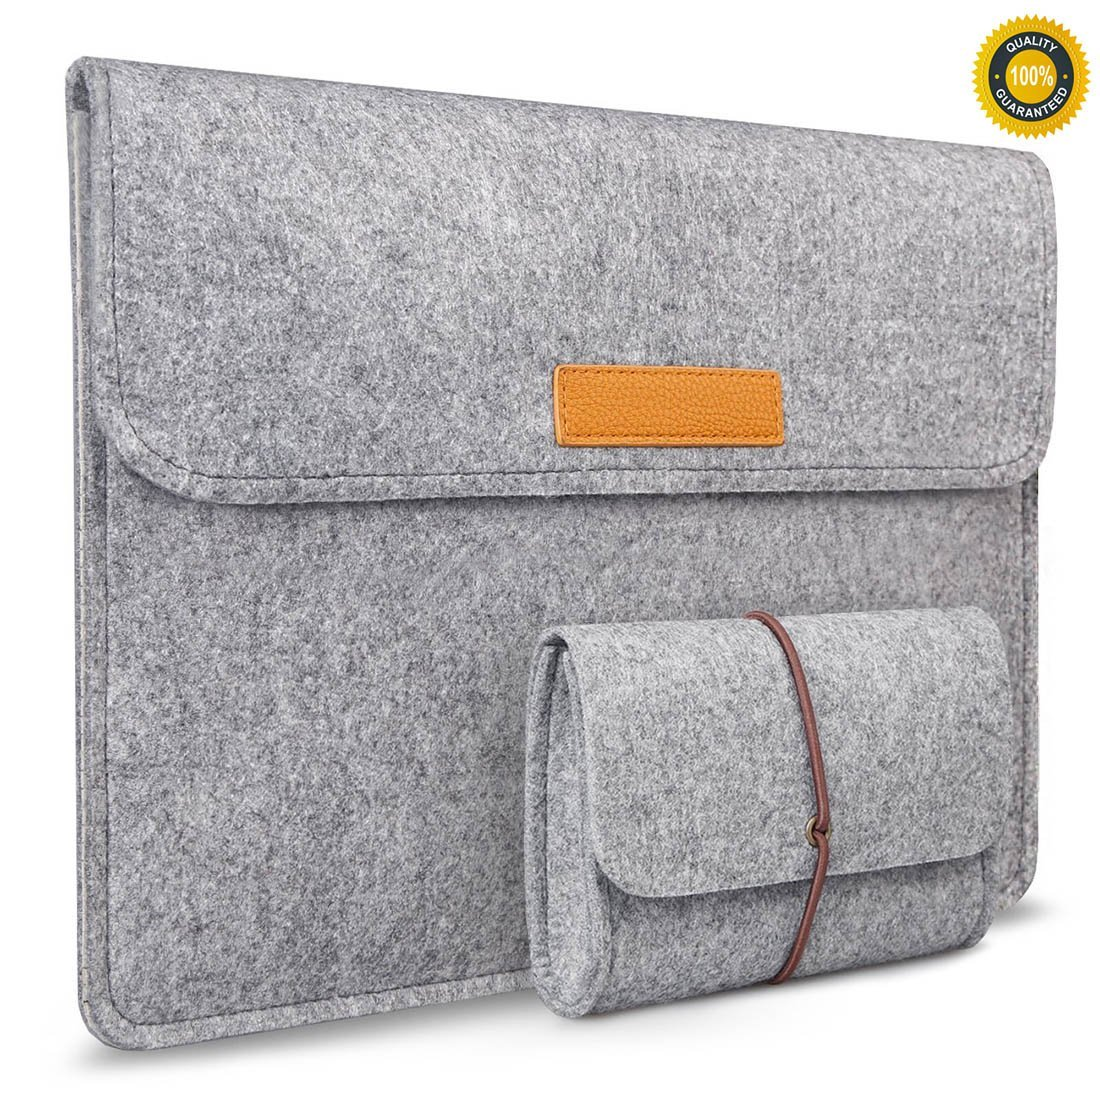 360° Protective Sleeve 13.3 Inch Surface Pro 4 & 3 laptop case 12 Inch Tablet bag,12.9 Inch iPad Pro Laptop Cases from EVERMATE